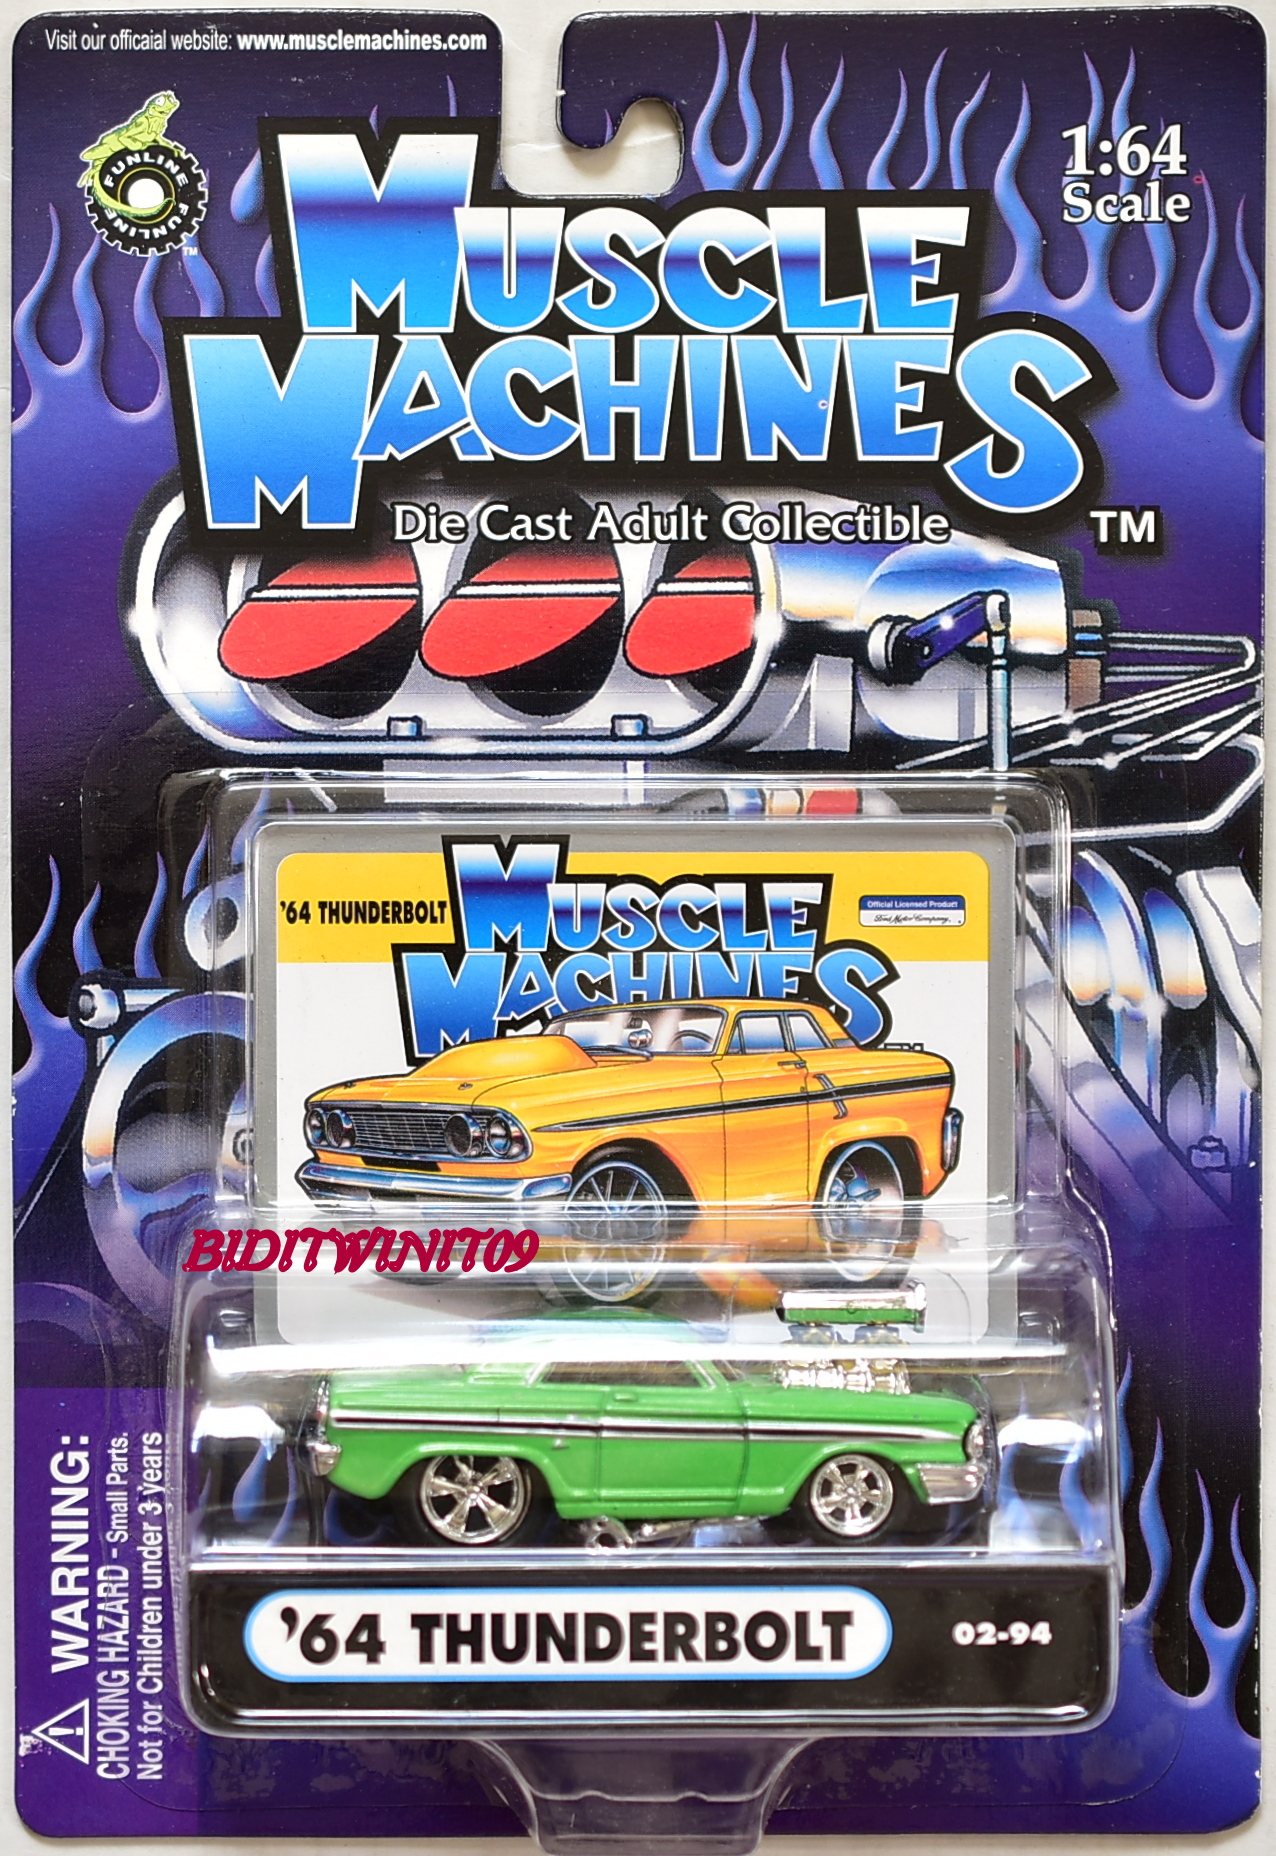 MUSCLE MACHINES '64 THUNDERBOLT 02-94 GREEN 1:64 SCALE